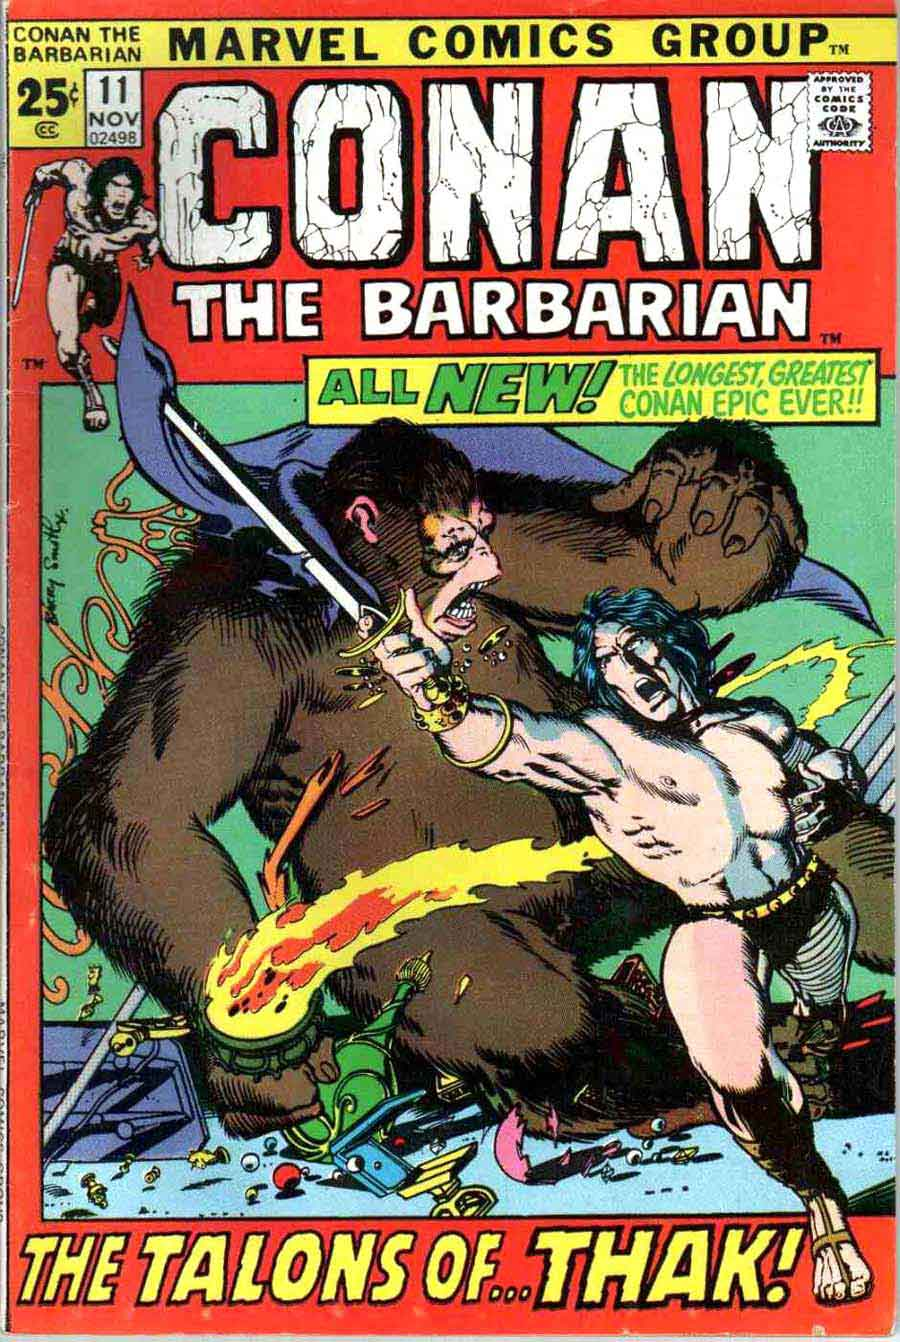 Conan the Barbarian v1 #11 marvel comic book cover art by Barry Windsor Smith